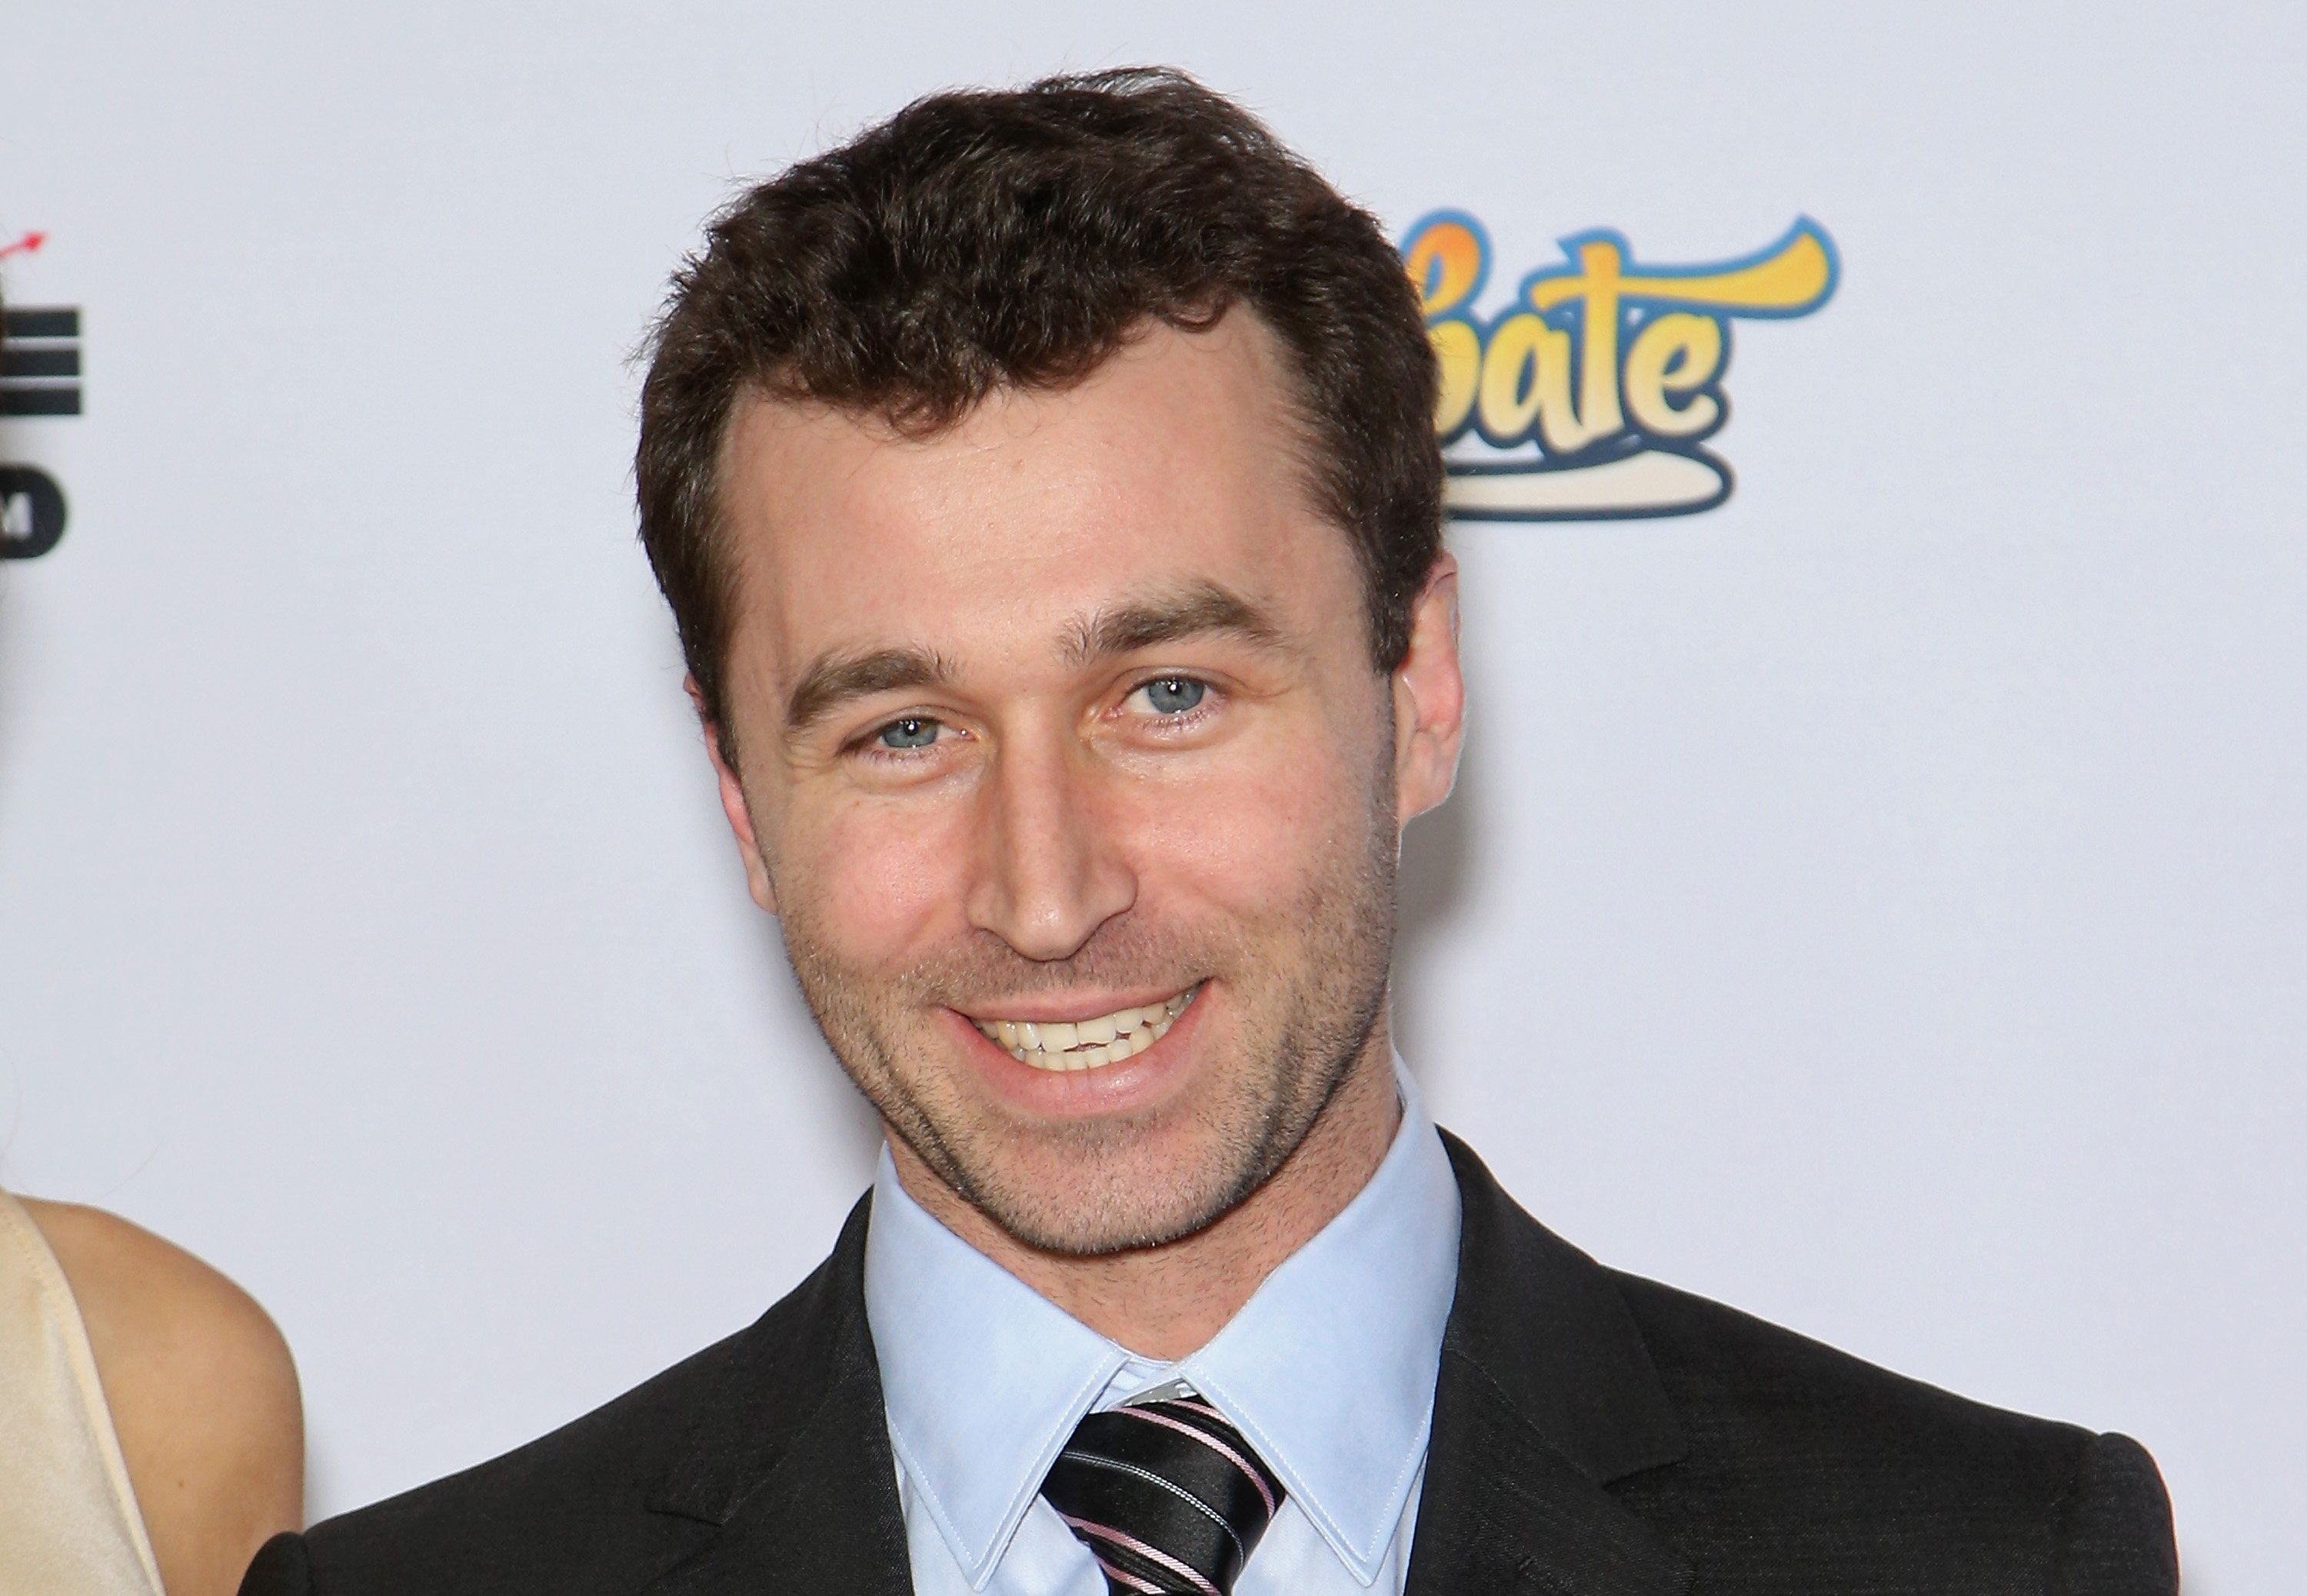 LAS VEGAS, NV - JANUARY 23:  Adult film actor James Deen attends the 2016 Adult Video News Awards at the Hard Rock Hotel & Casino on January 23, 2016 in Las Vegas, Nevada.  (Photo by Gabe Ginsberg/FilmMagic)